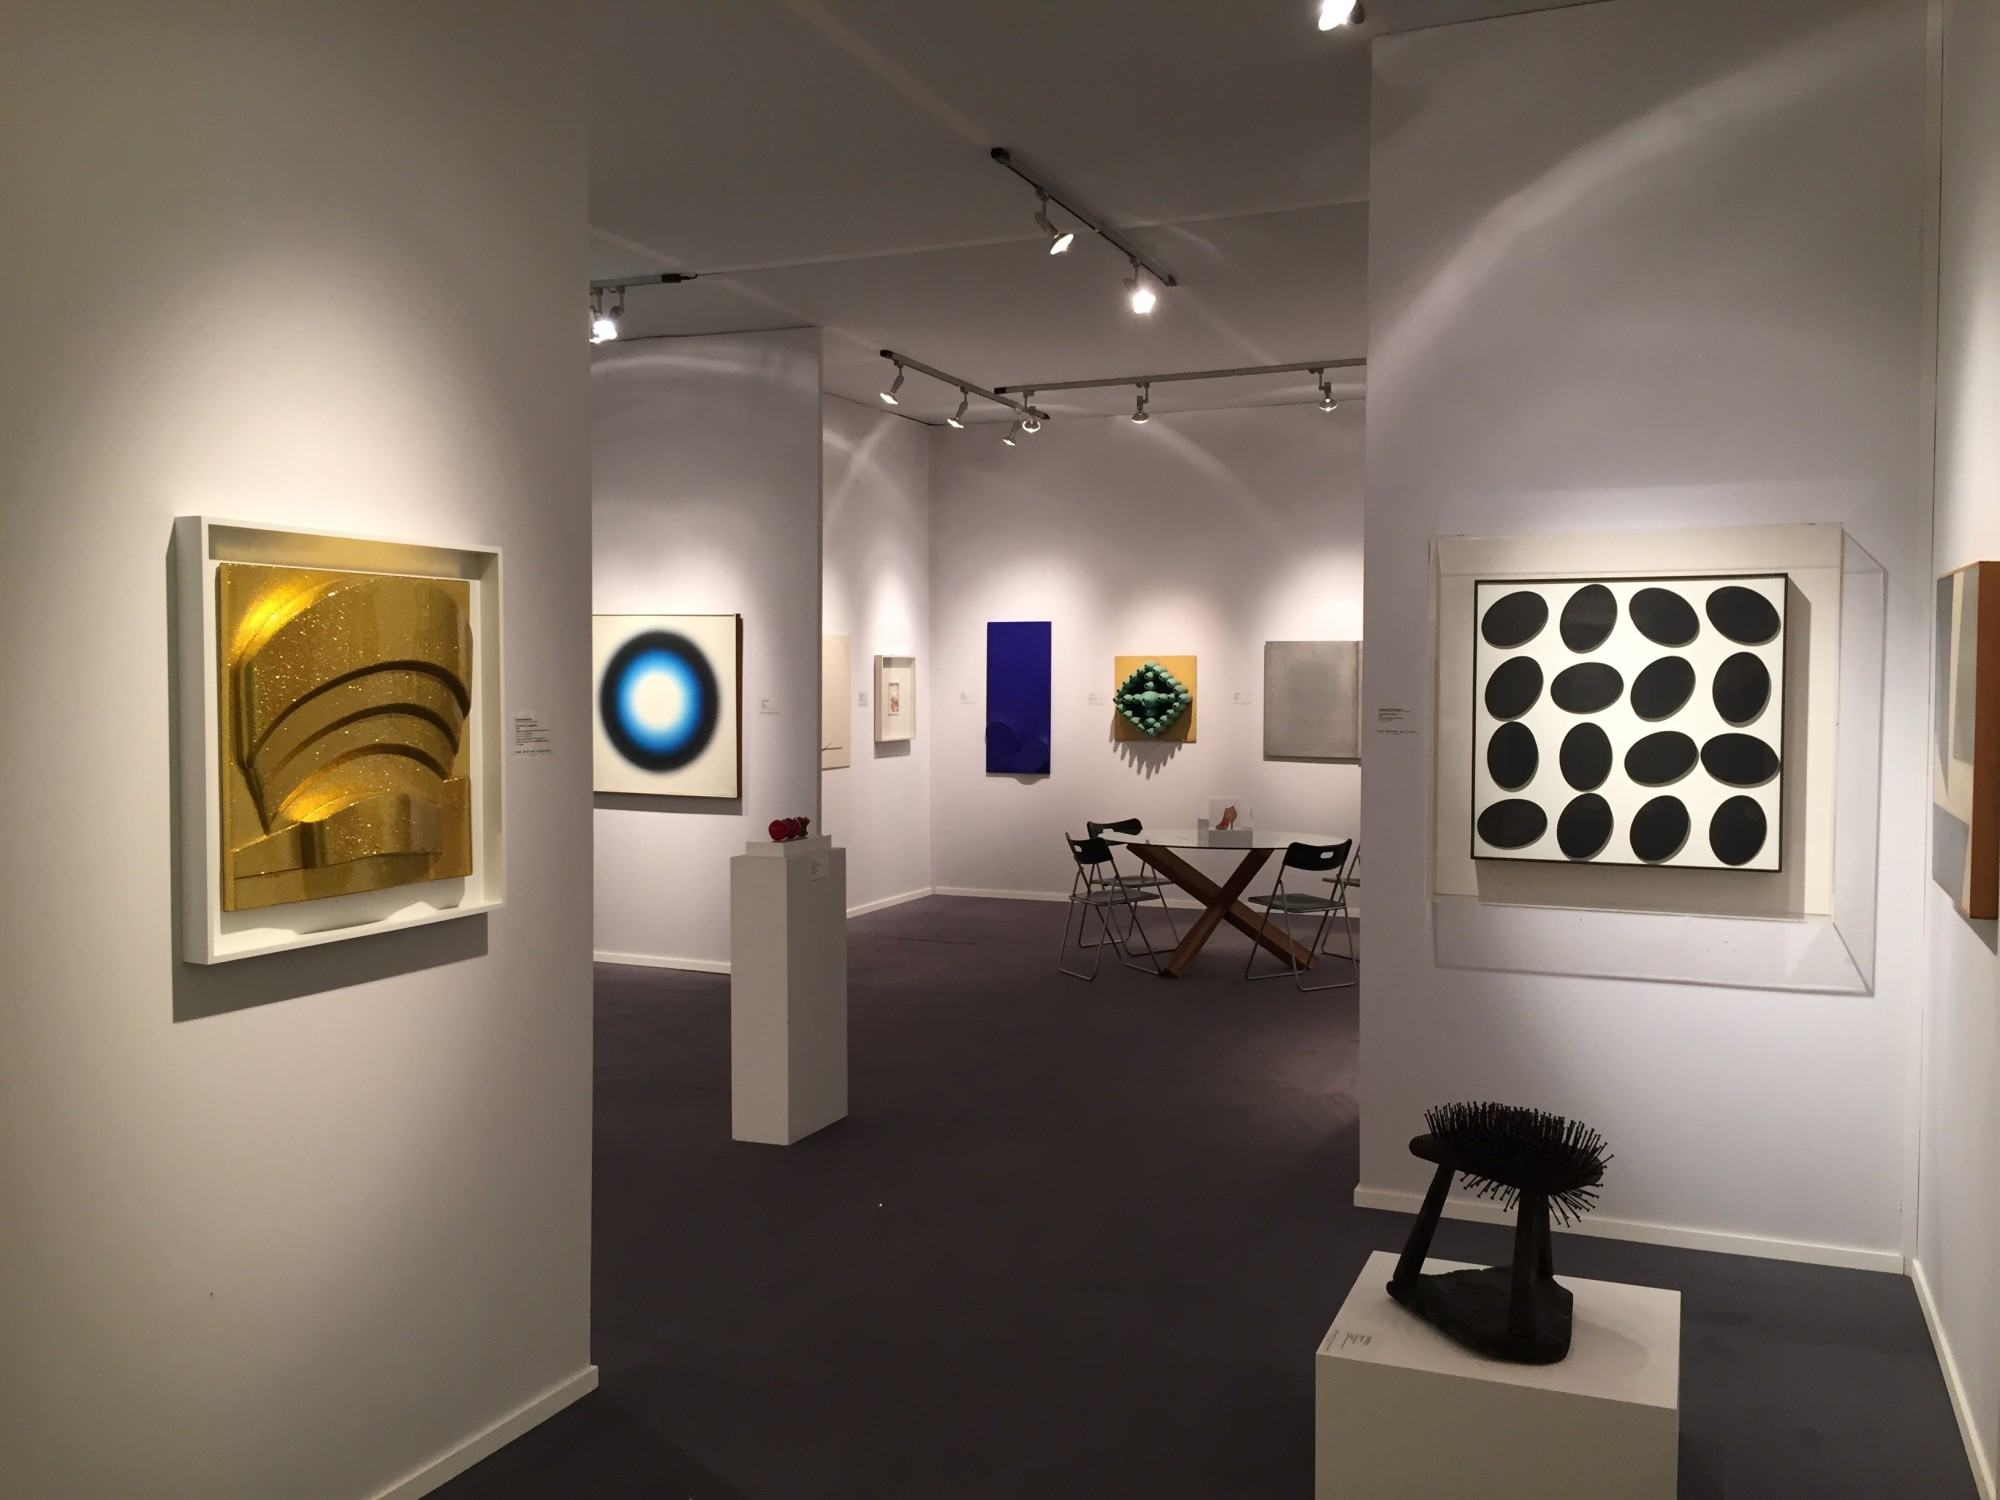 """<span class=""""link fancybox-details-link""""><a href=""""/exhibitions/315/works/image_standalone1559/"""">View Detail Page</a></span><p>TEFAF 2015, INSTALLATION VIEW</p>"""